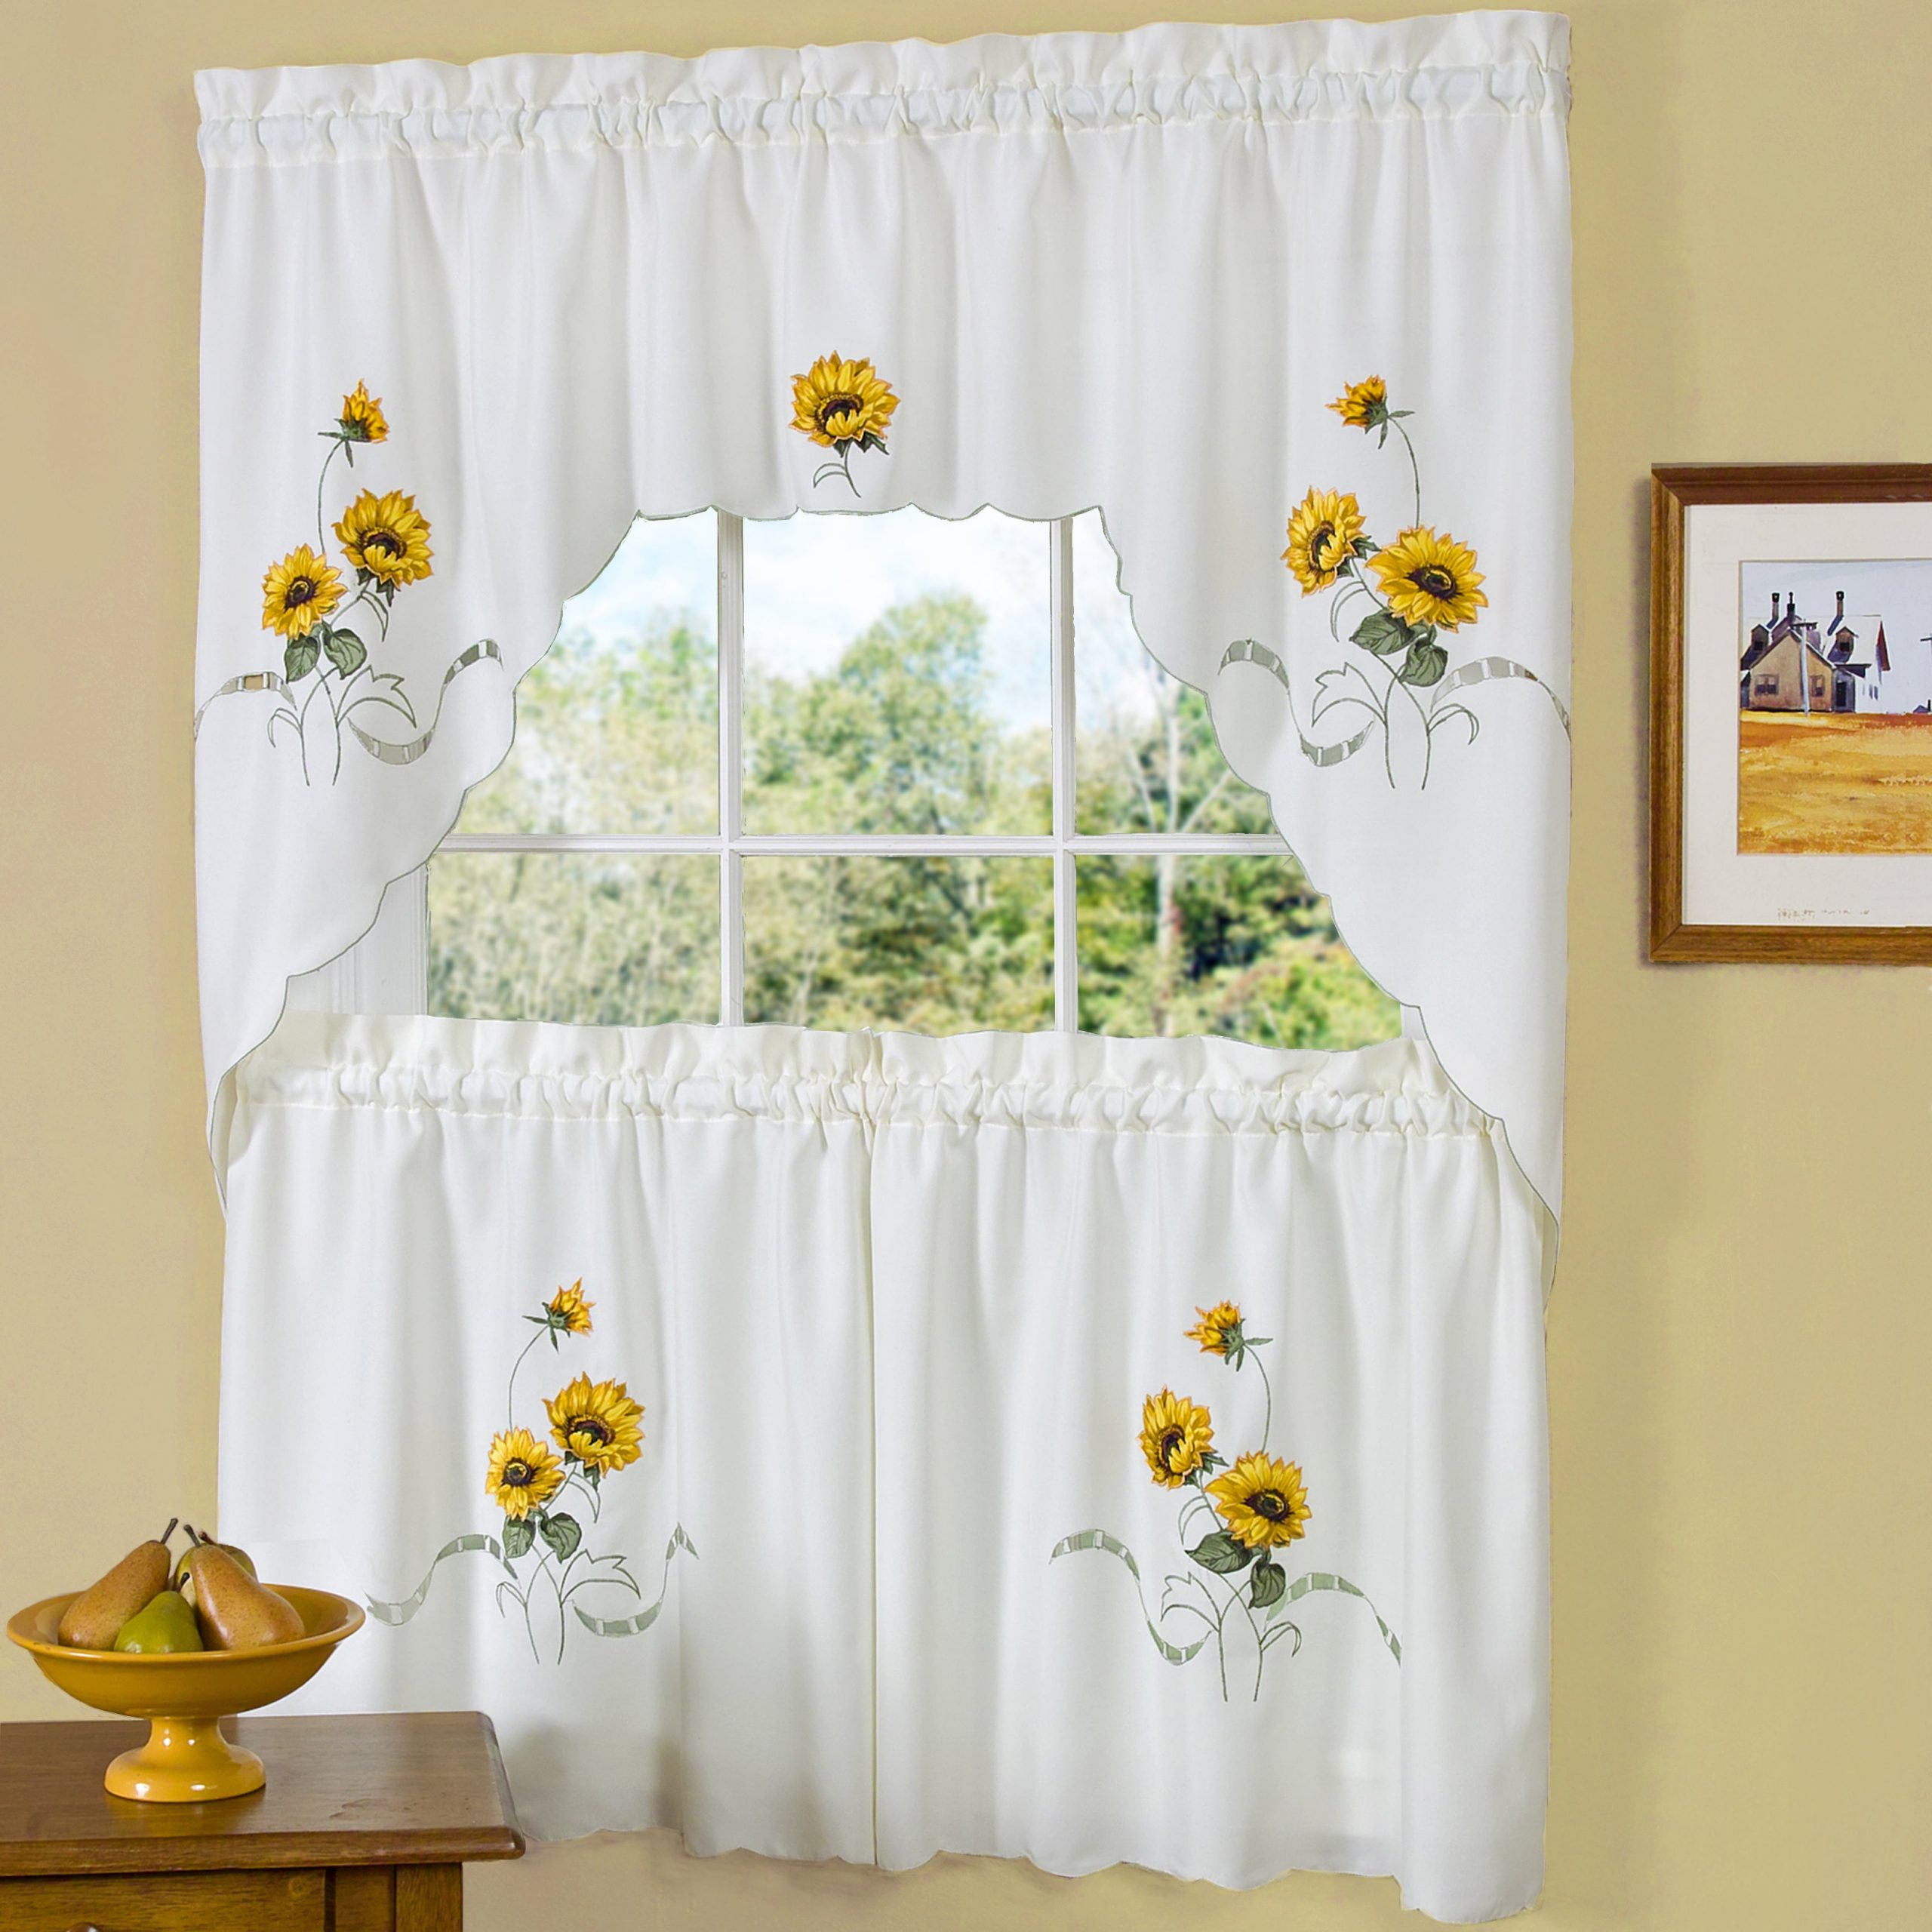 Most Current Cotton Blend Ivy Floral Tier Curtain And Swag Sets Intended For Traditional Two Piece Tailored Tier And Swag Window Curtains Set With Embroidered Yellow Sunflowers – 36 Inch (View 6 of 20)